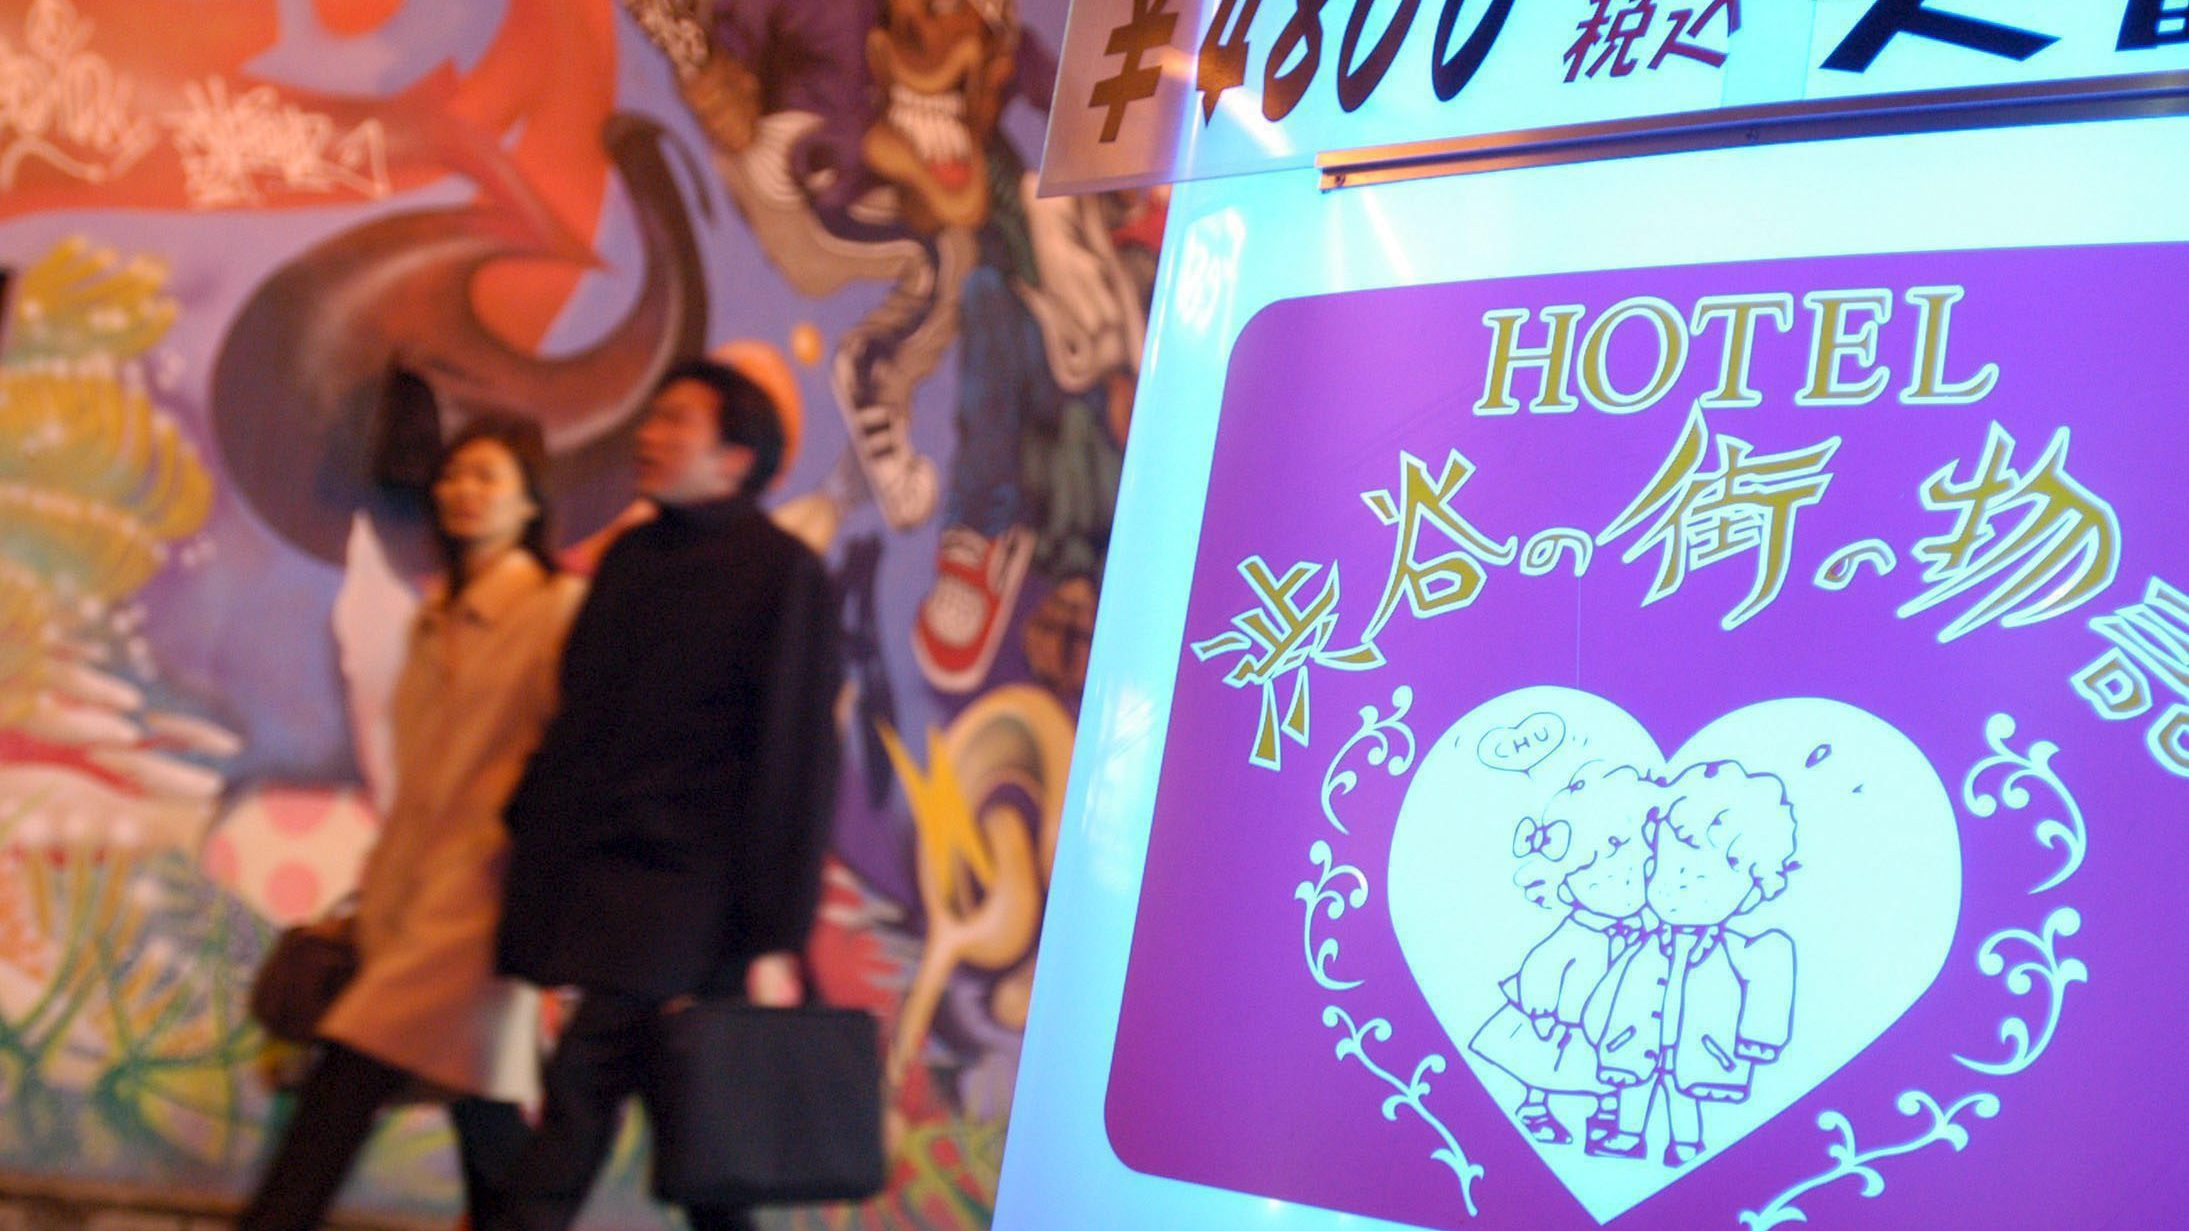 An advertisement for a love hotel in Japan.